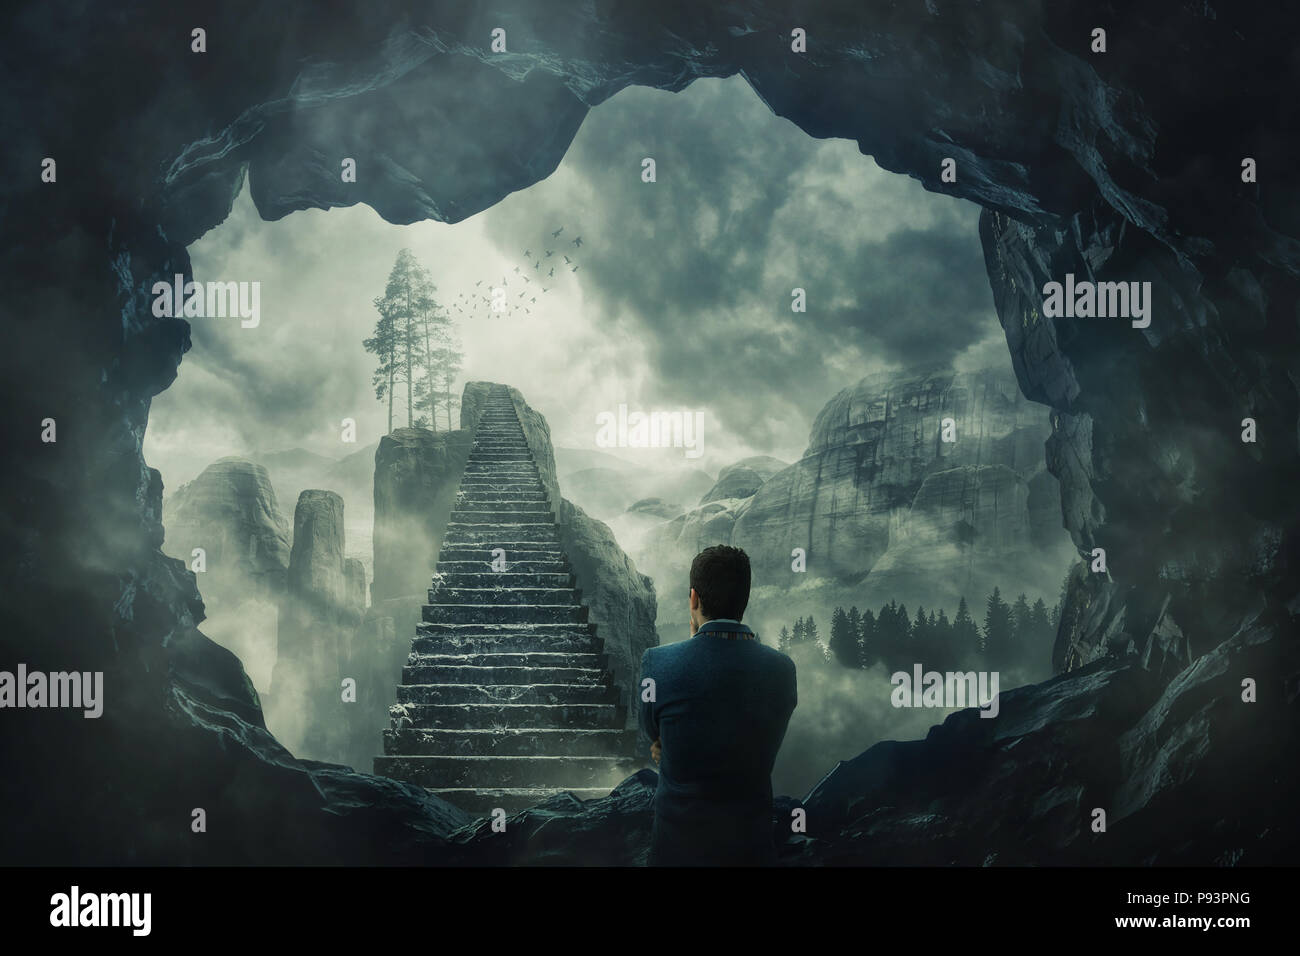 Surreal view as a man escape from a dark cave stand in front of a mystic stairway crossing the misty abyss going up to unknown paradise. Opportunity s - Stock Image